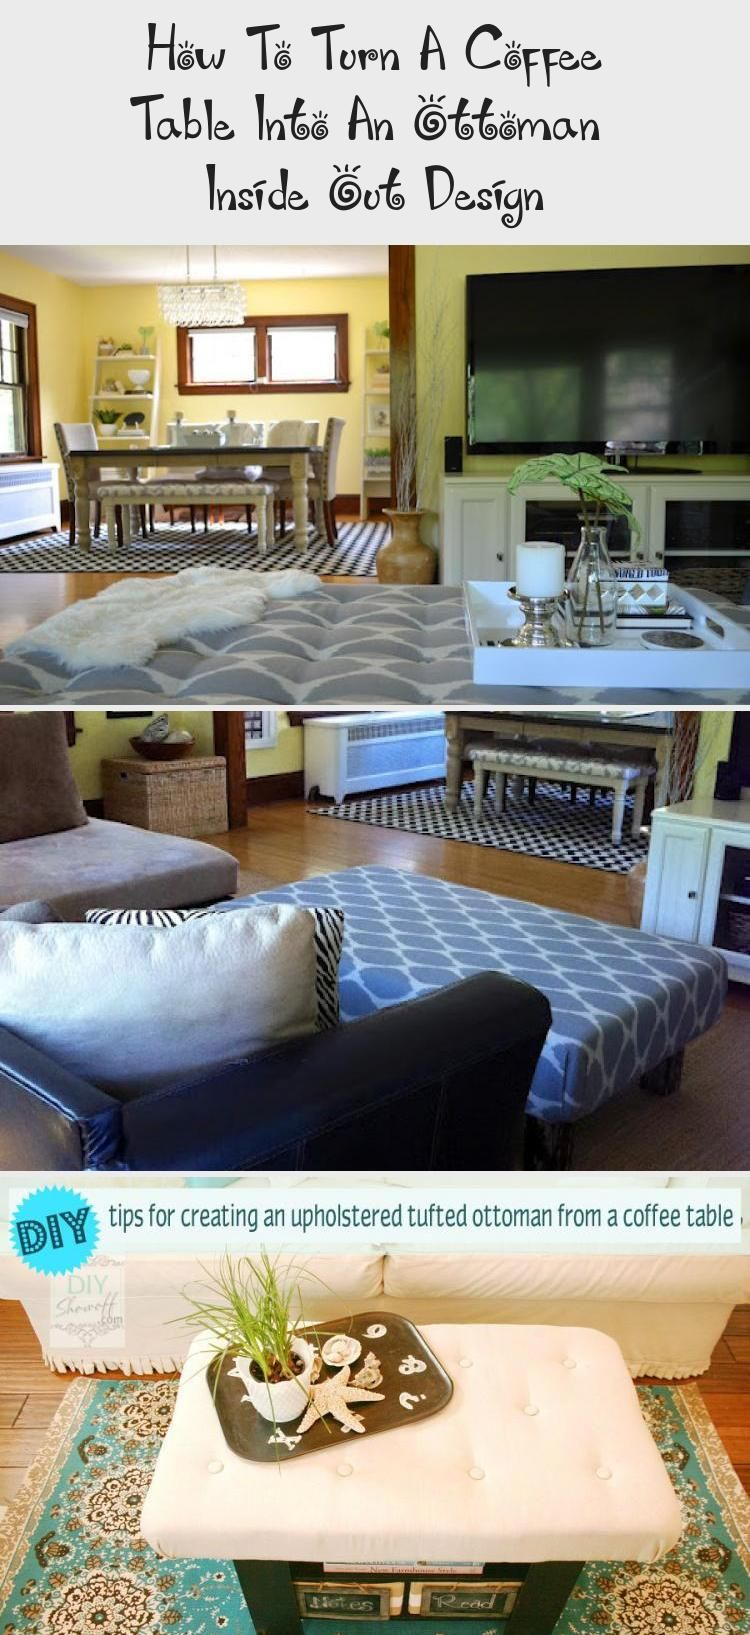 How To Turn A Coffee Table Into An Ottoman Inside Out Design Home Decor Diy Home Decor Coffee Table Ottoman [ 1635 x 750 Pixel ]